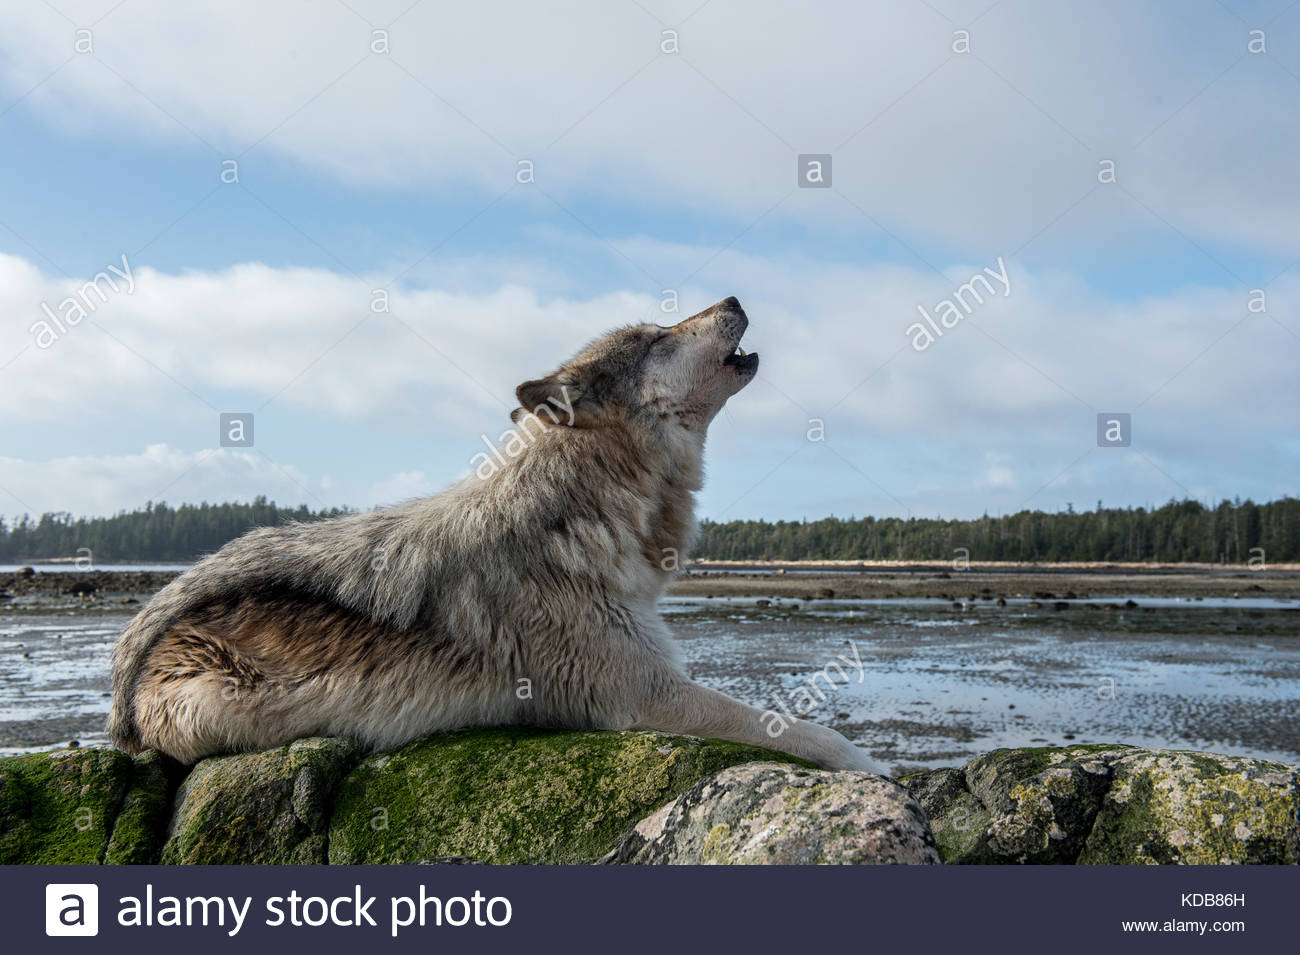 A coastal wolf, Canis lupus, howls on a beach at low tide. - Stock Image